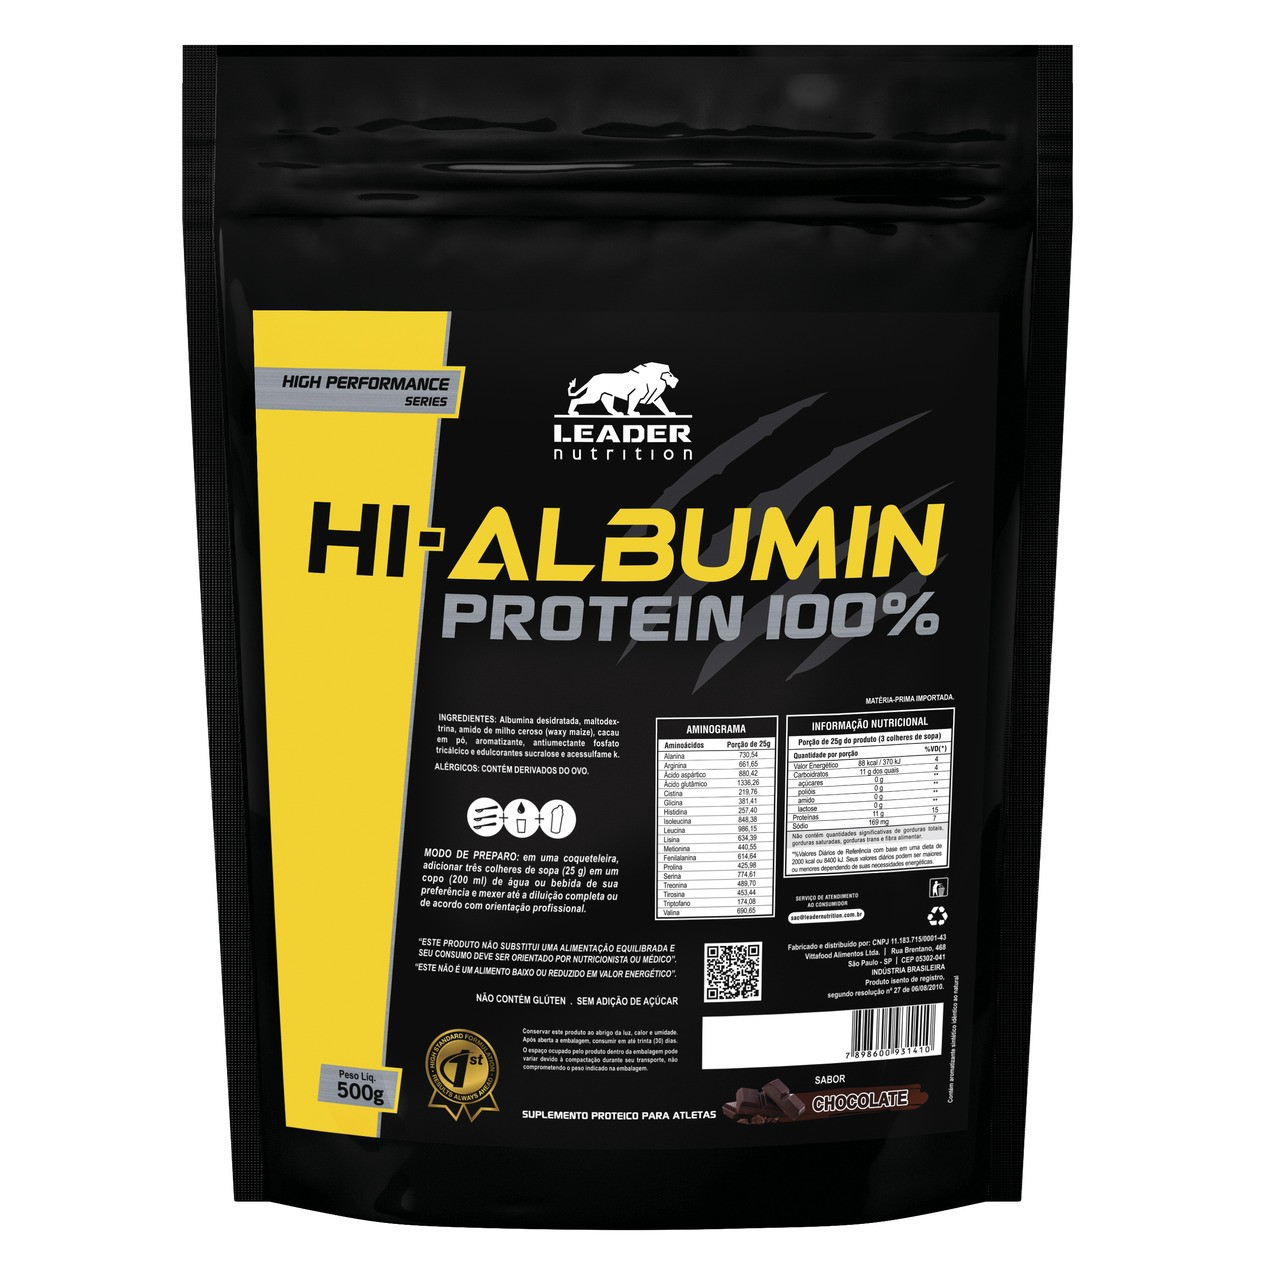 Hi-Albumin Protein 100% (500g) - Leader Nutrition